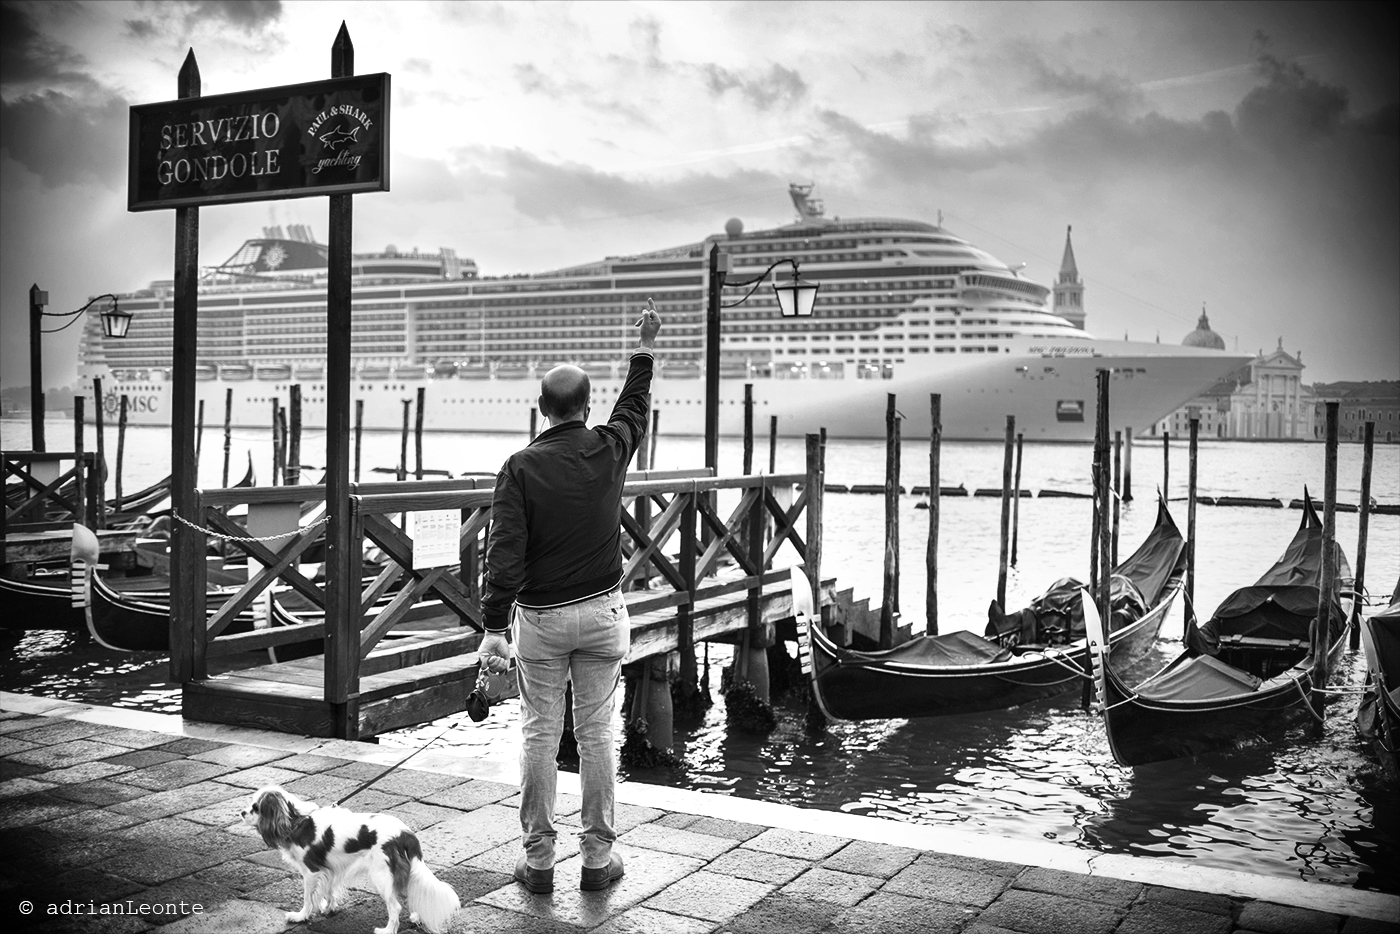 venetian salute, travel, Venice, Italy, black and white, MSC